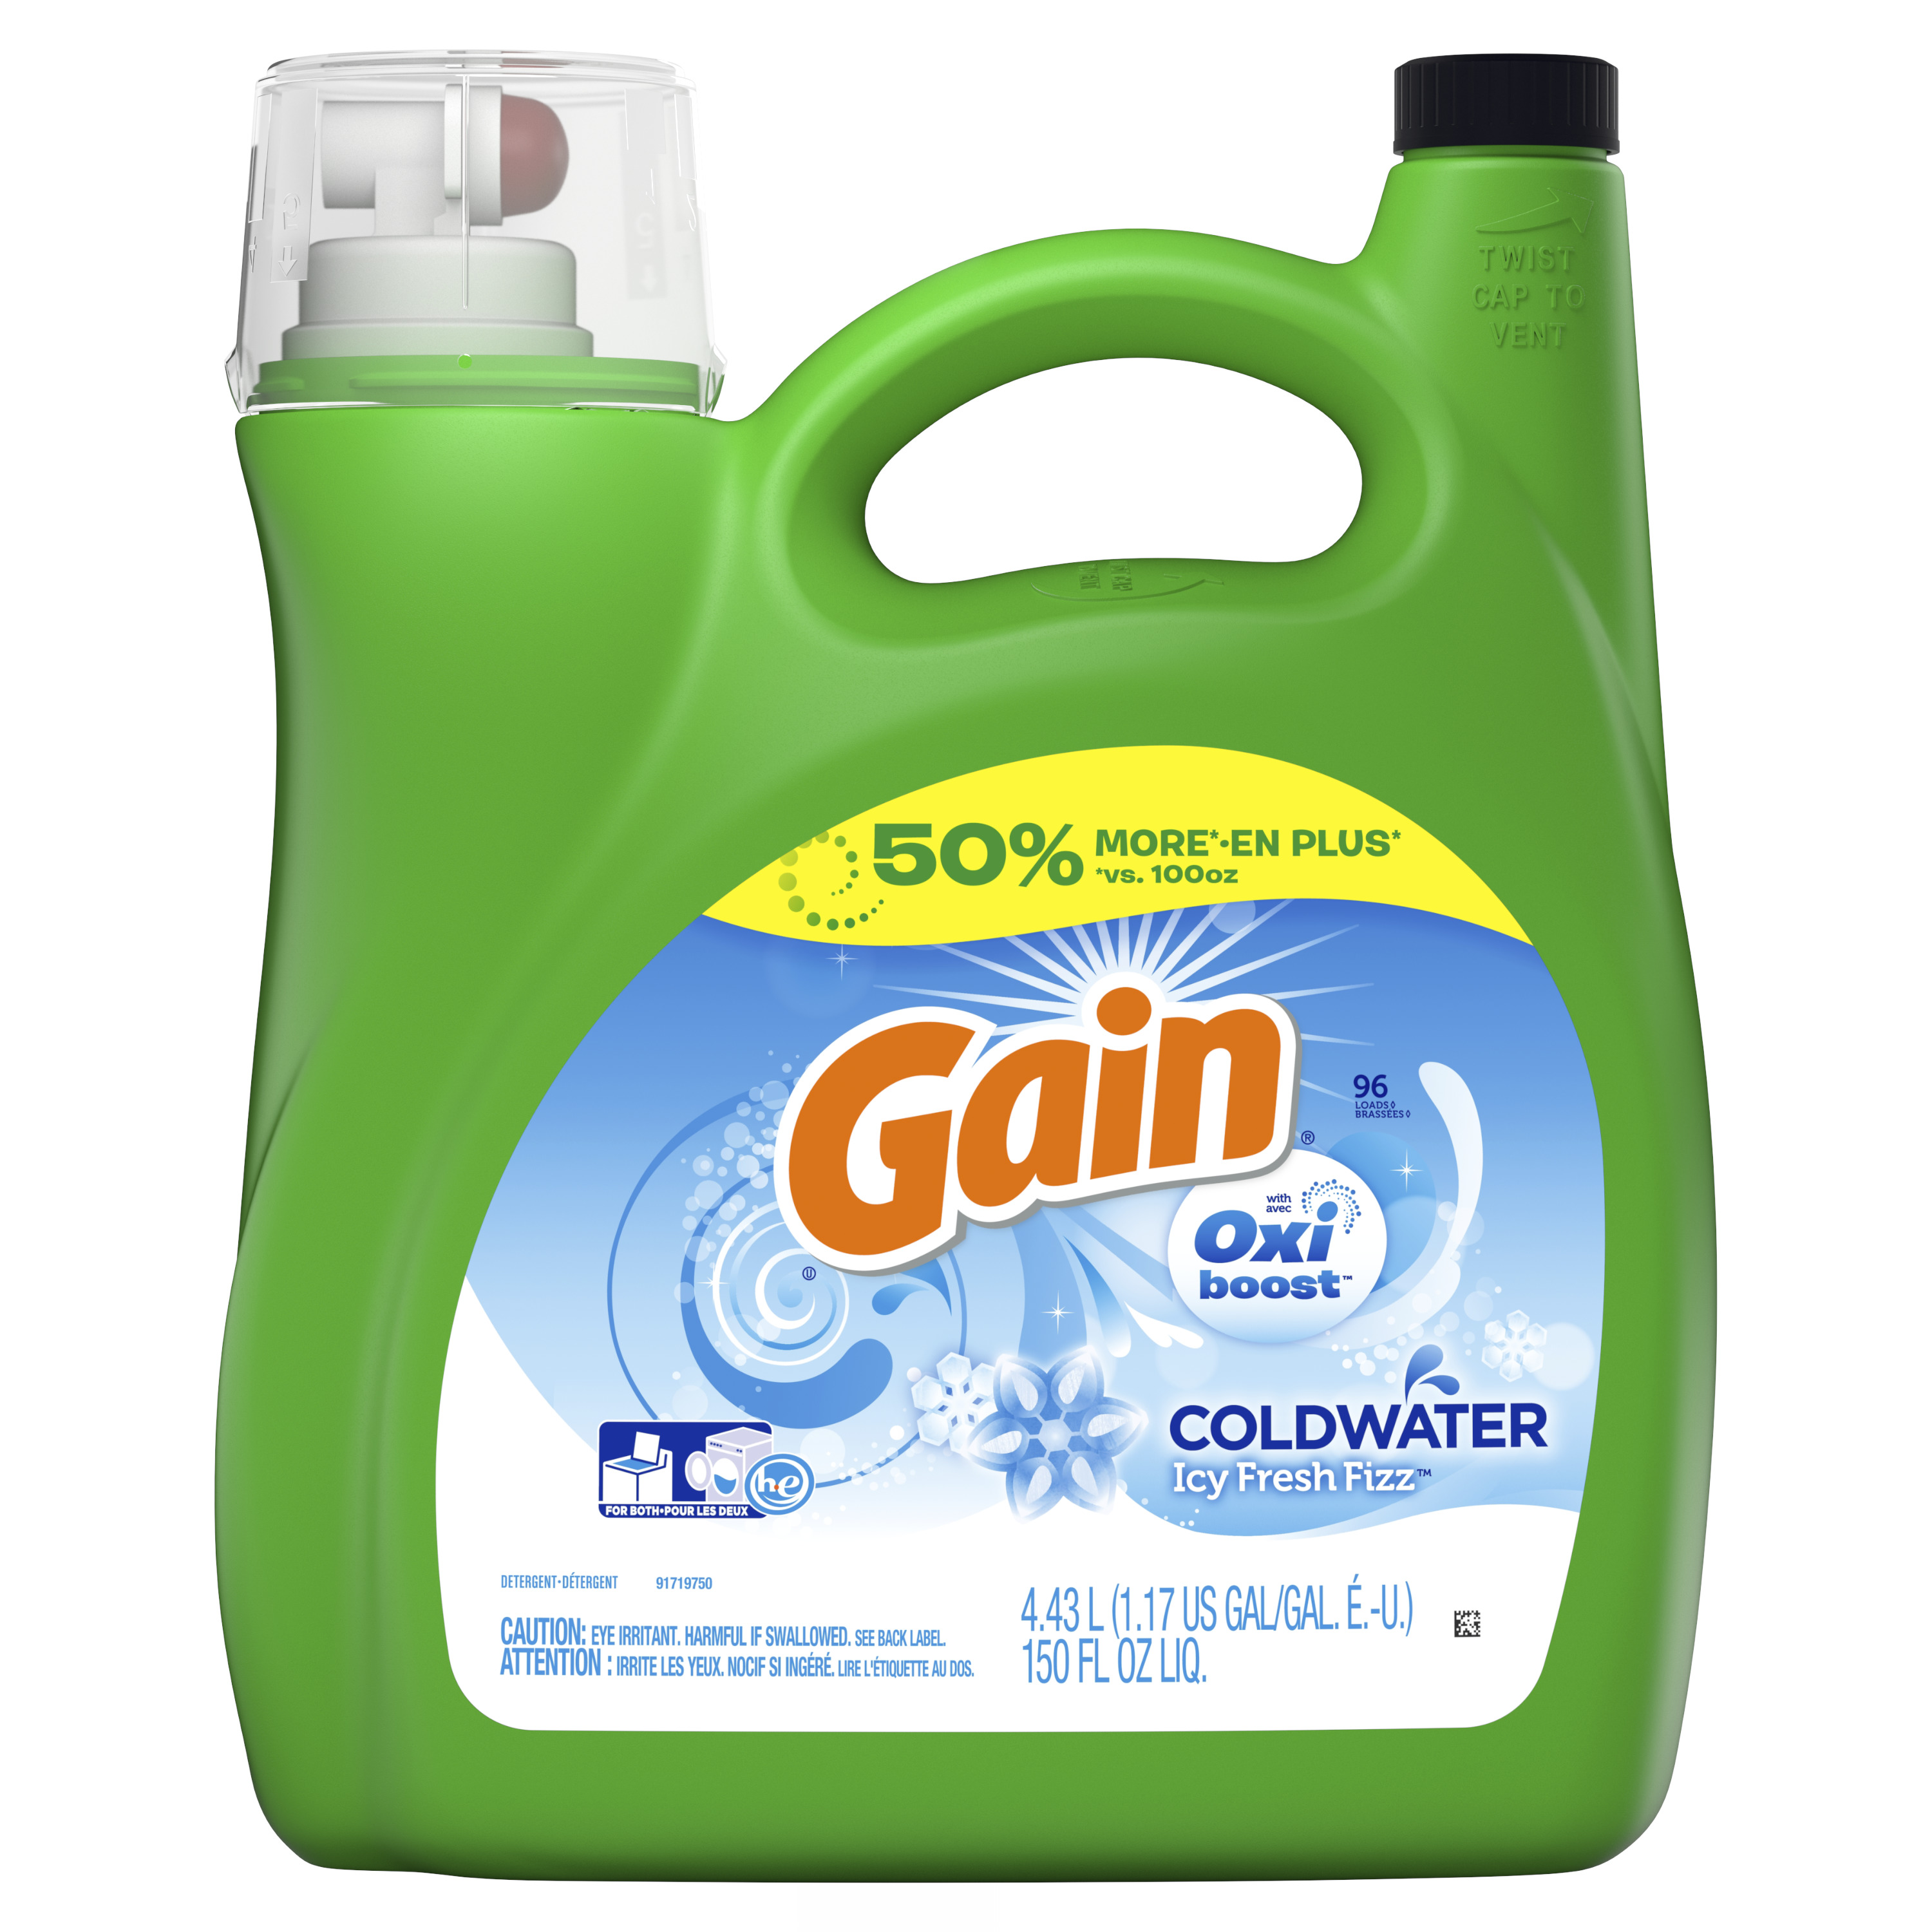 Gain Coldwater Liquid Laundry Detergent with Oxi Boost, Icy Fresh Fizz, 96 Loads 150 fl oz